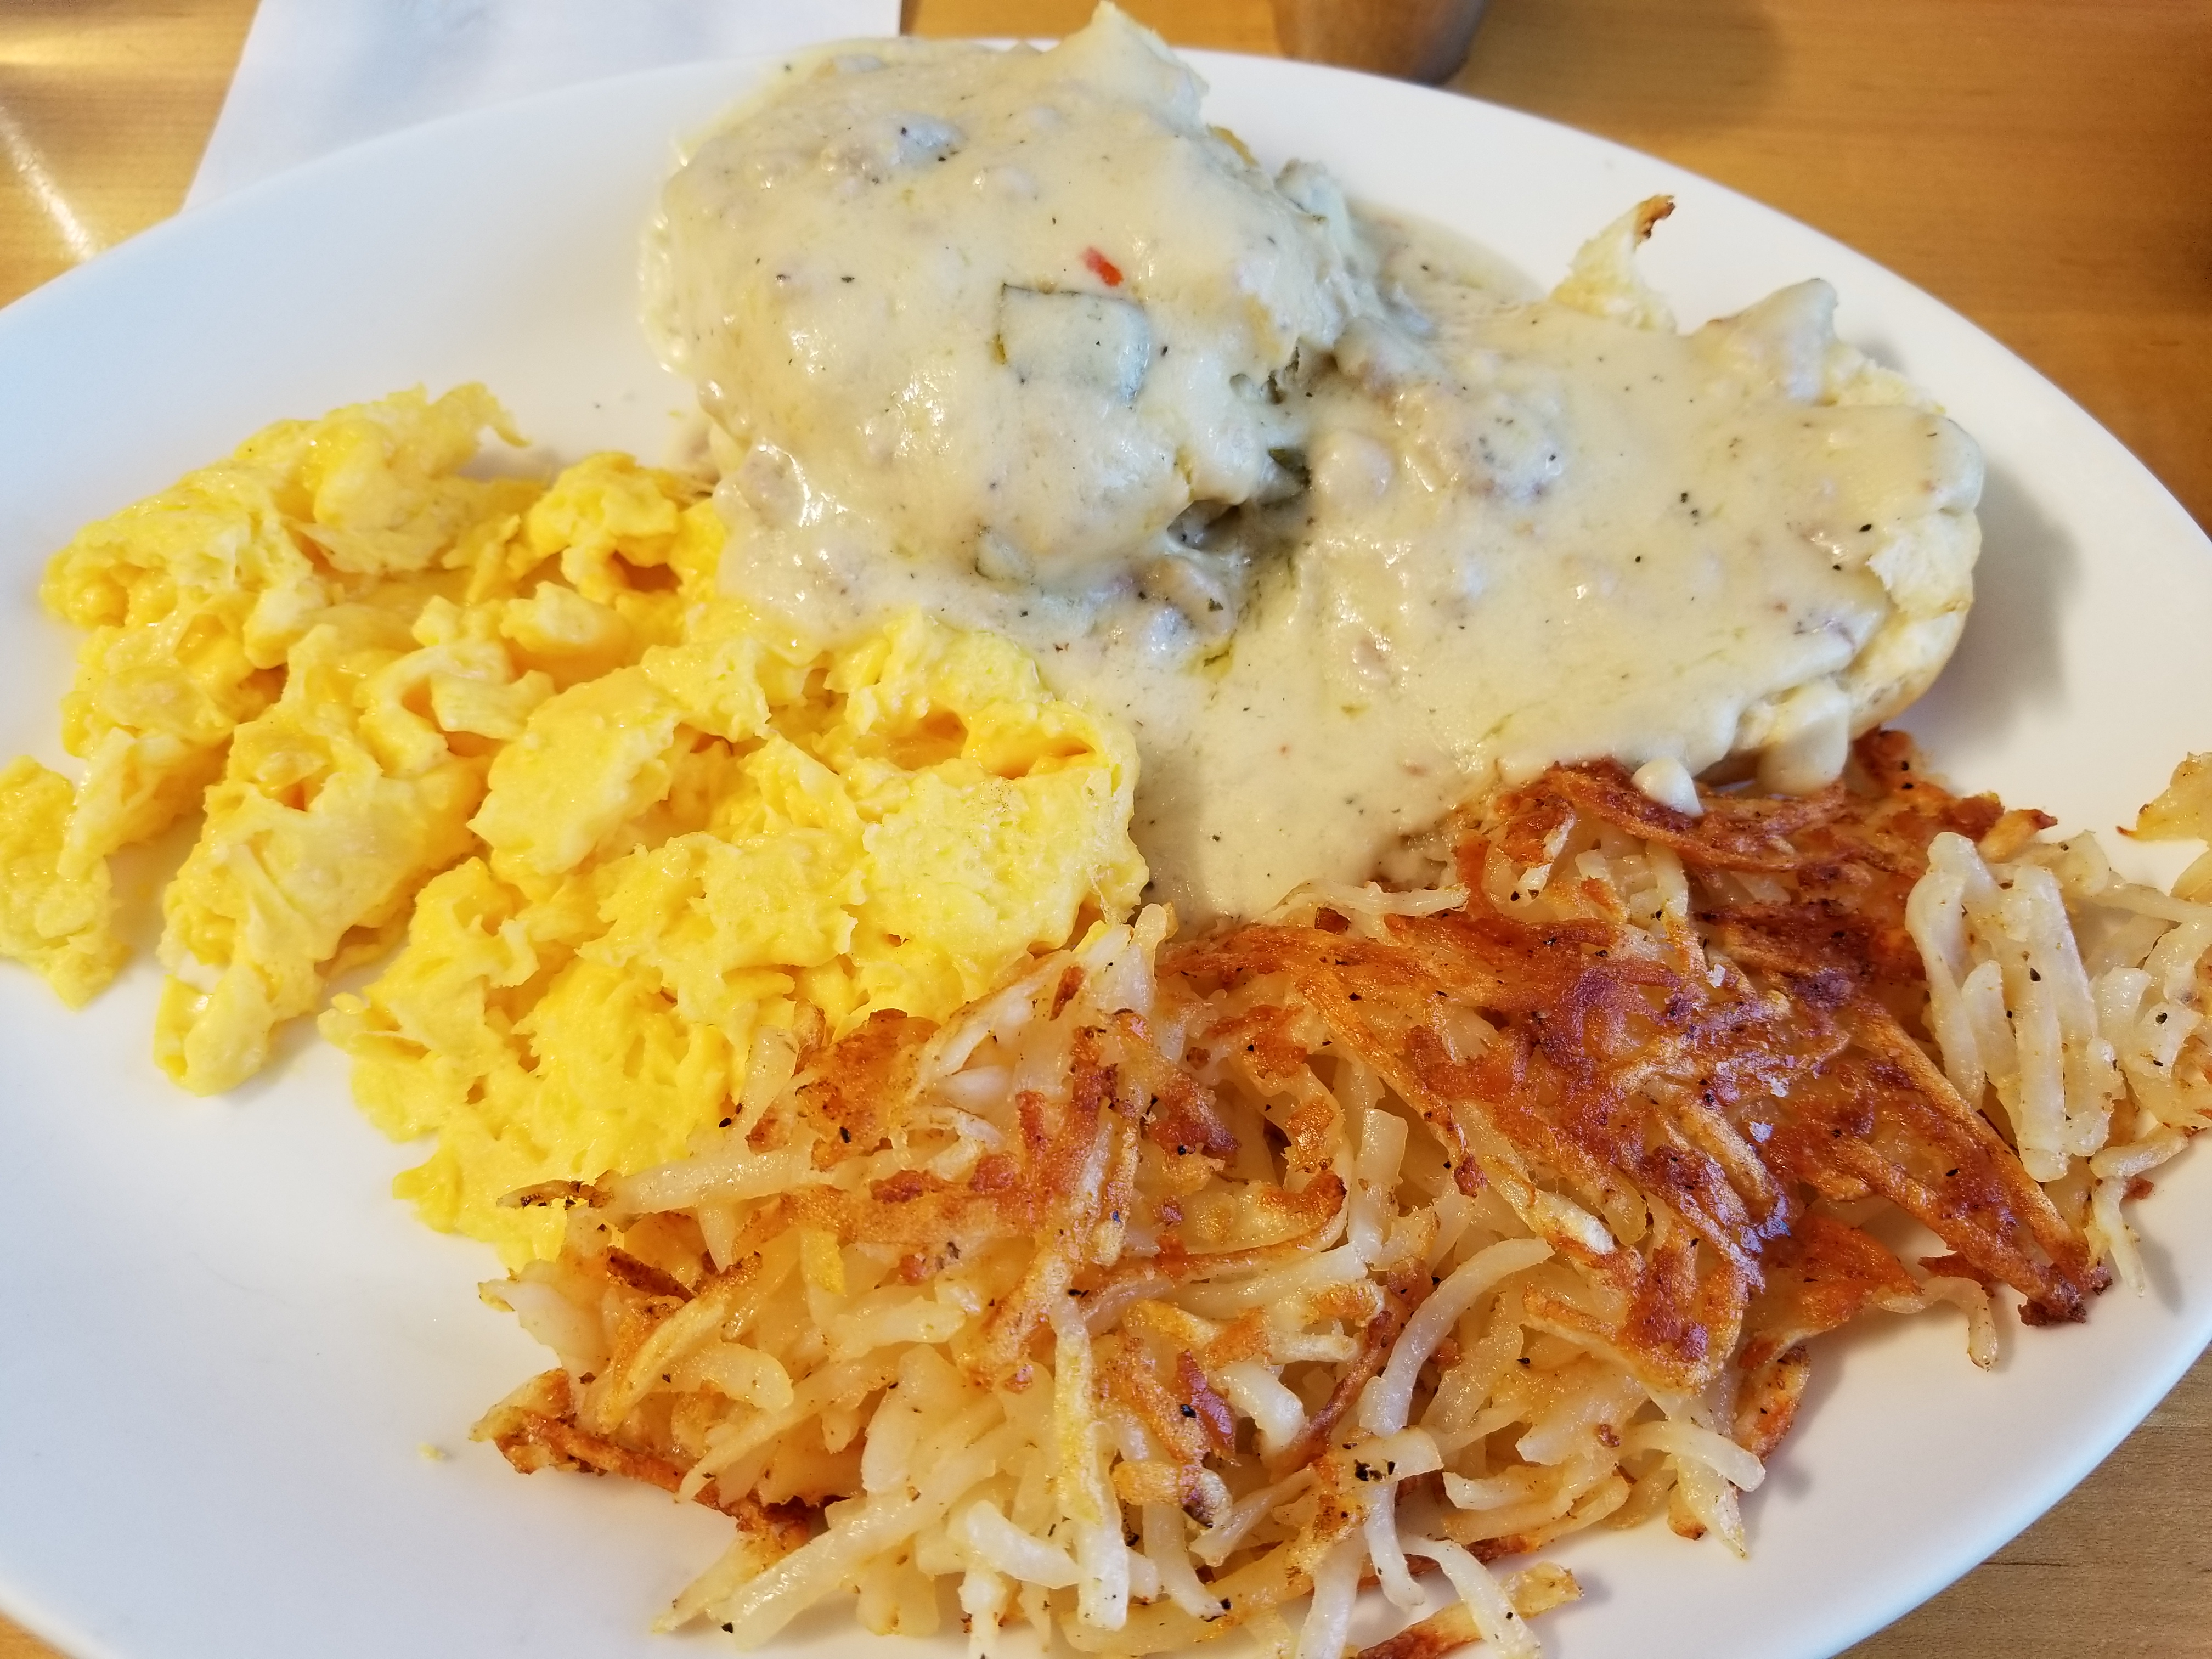 Award-winning Biscuits and Gravy (with a side of hashbrowns)